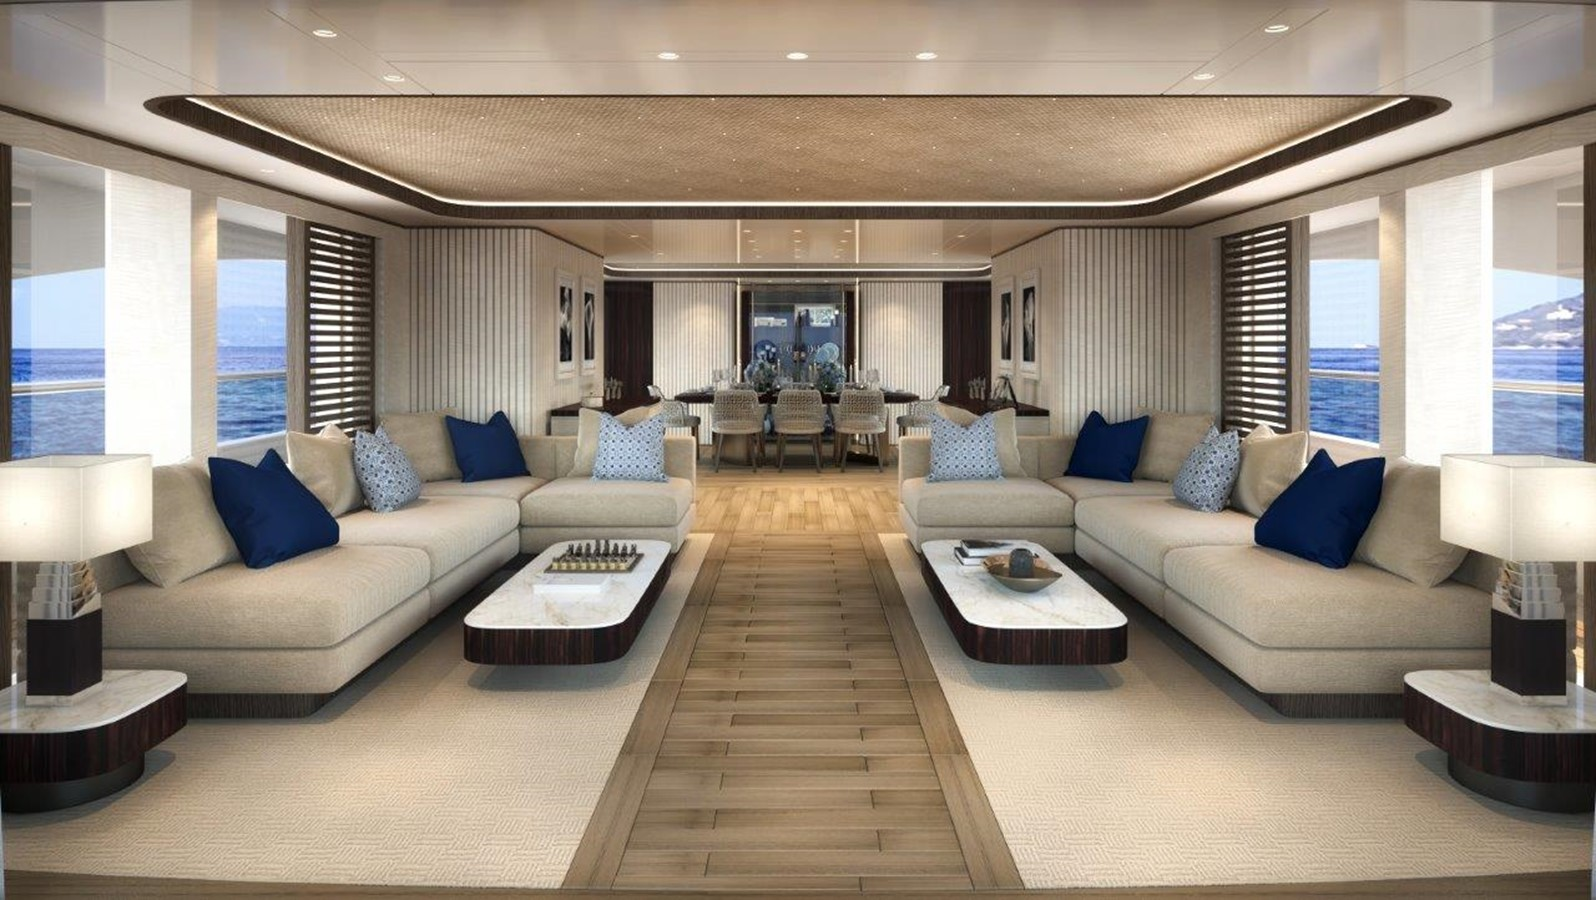 Main Salon - Contemporary Interior 2022 BENETTI Steel and Aluminum M/Y Motor Yacht 2617390